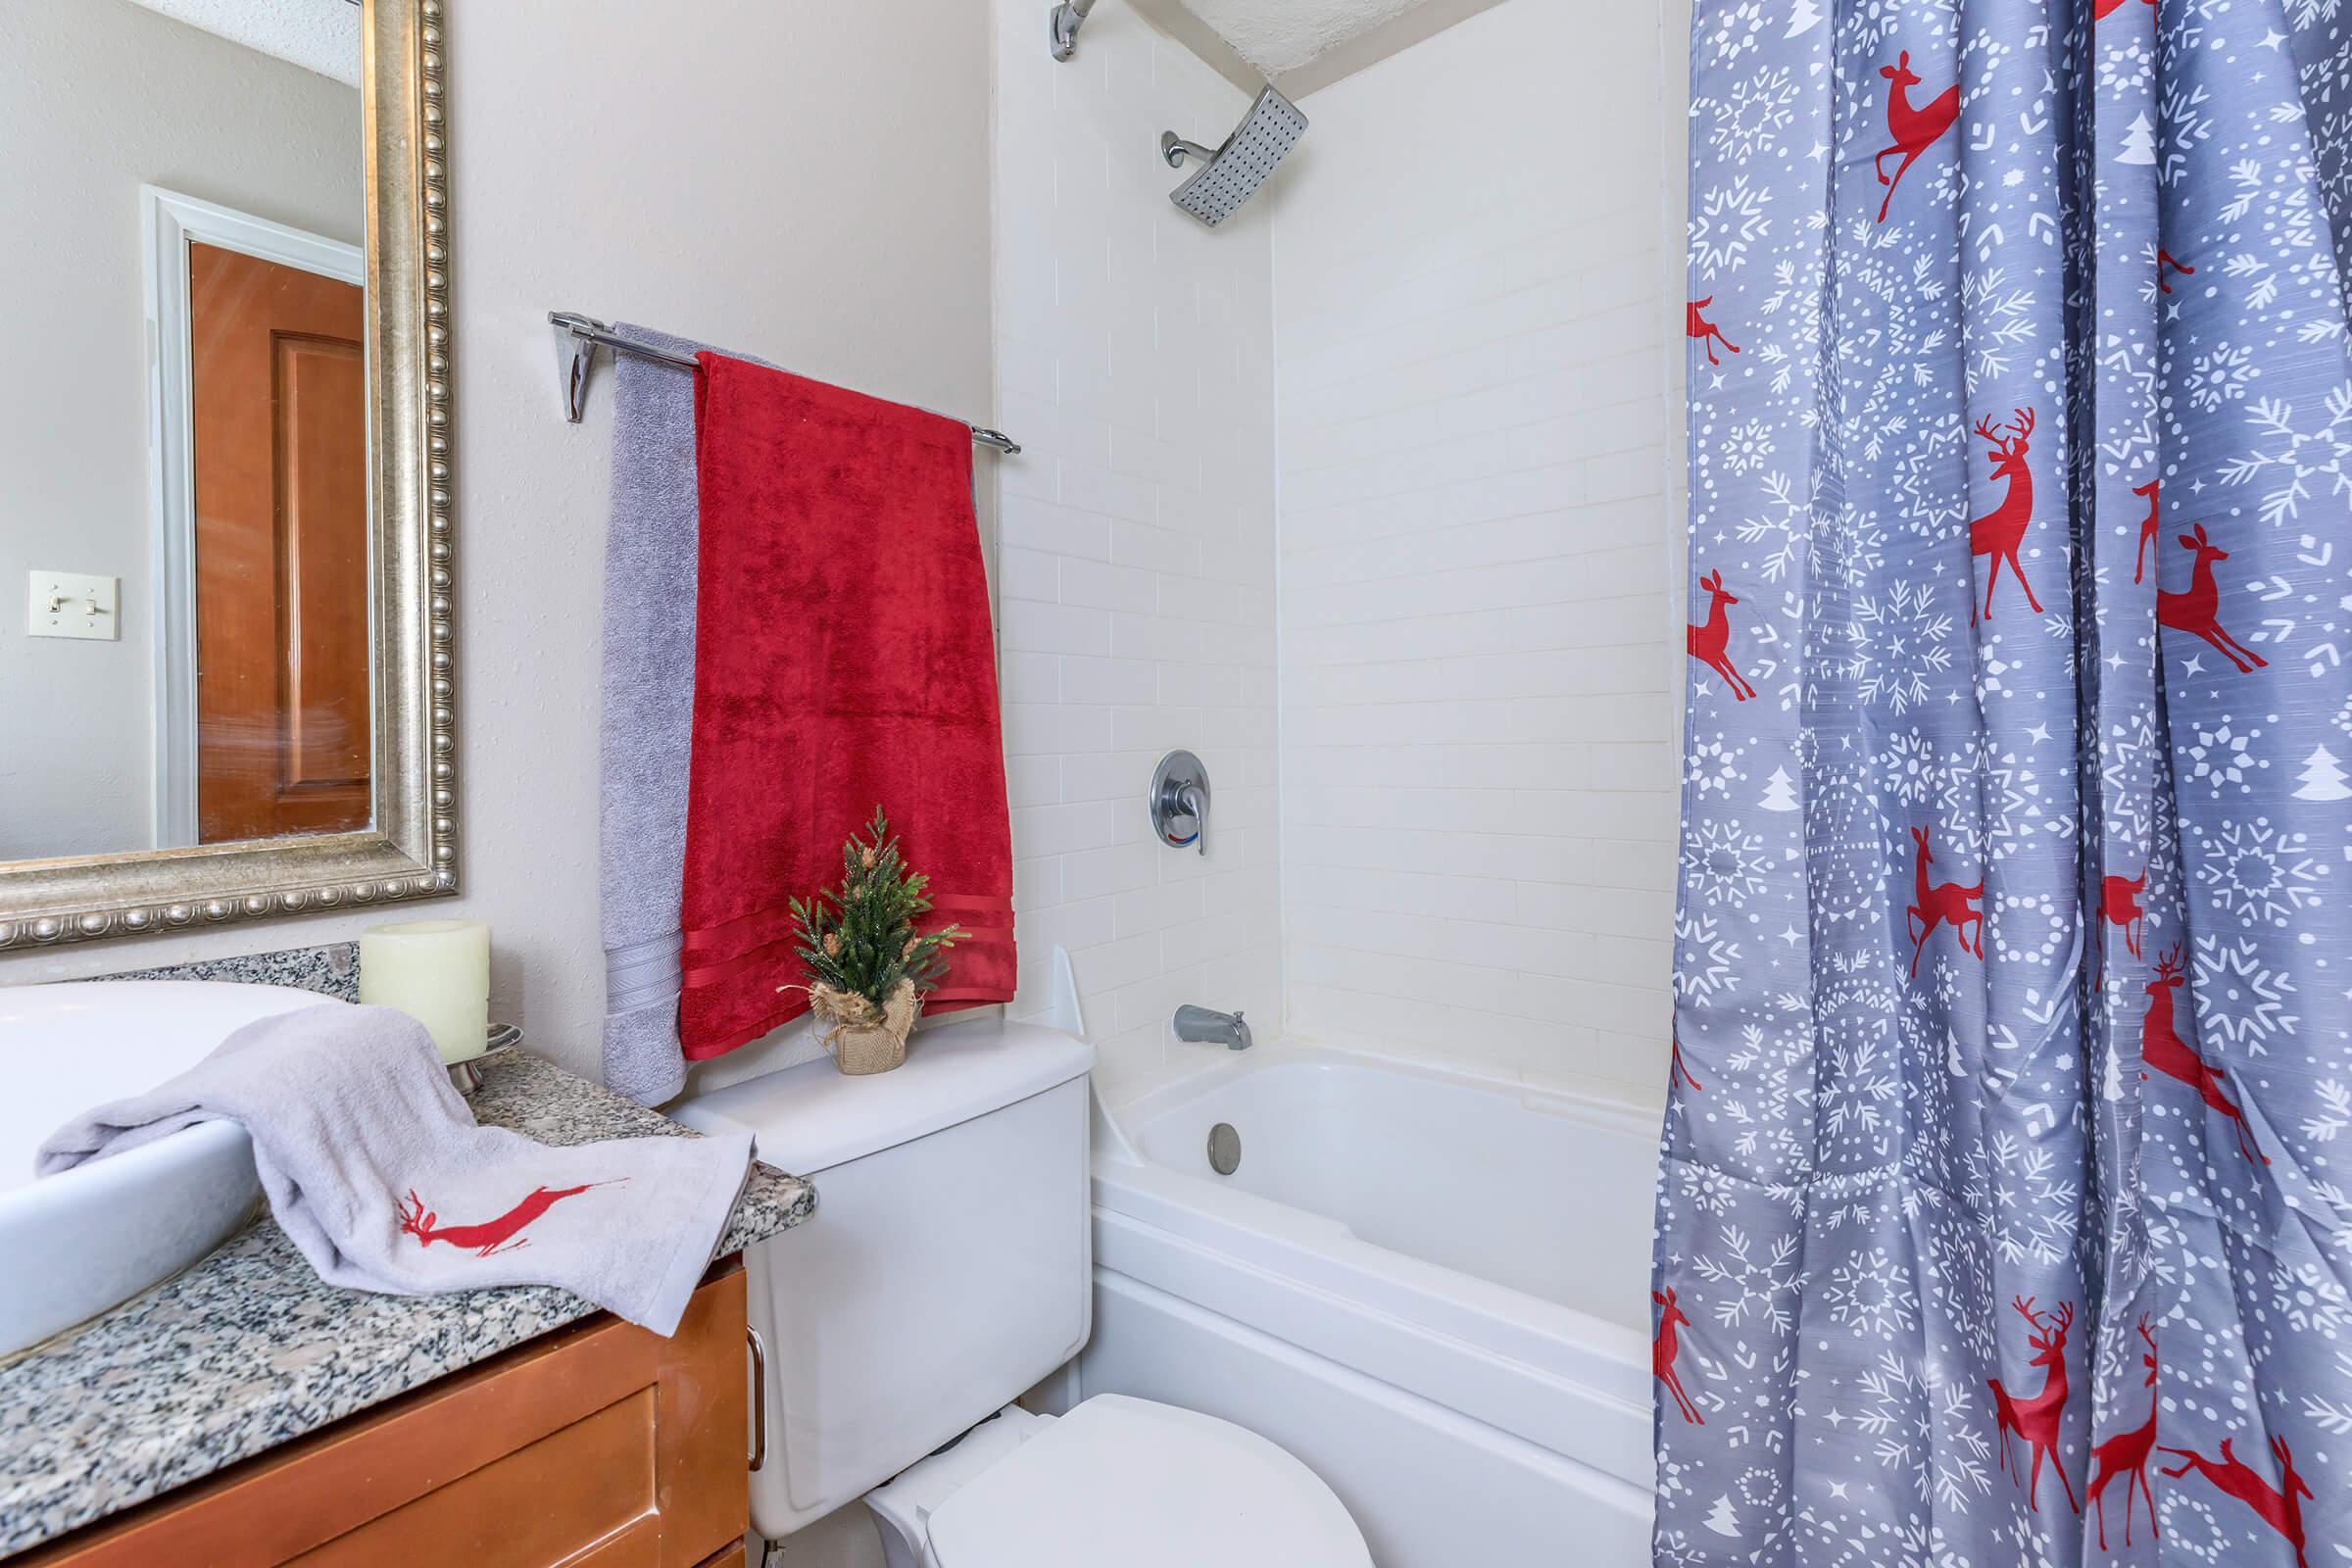 a bedroom with a shower curtain